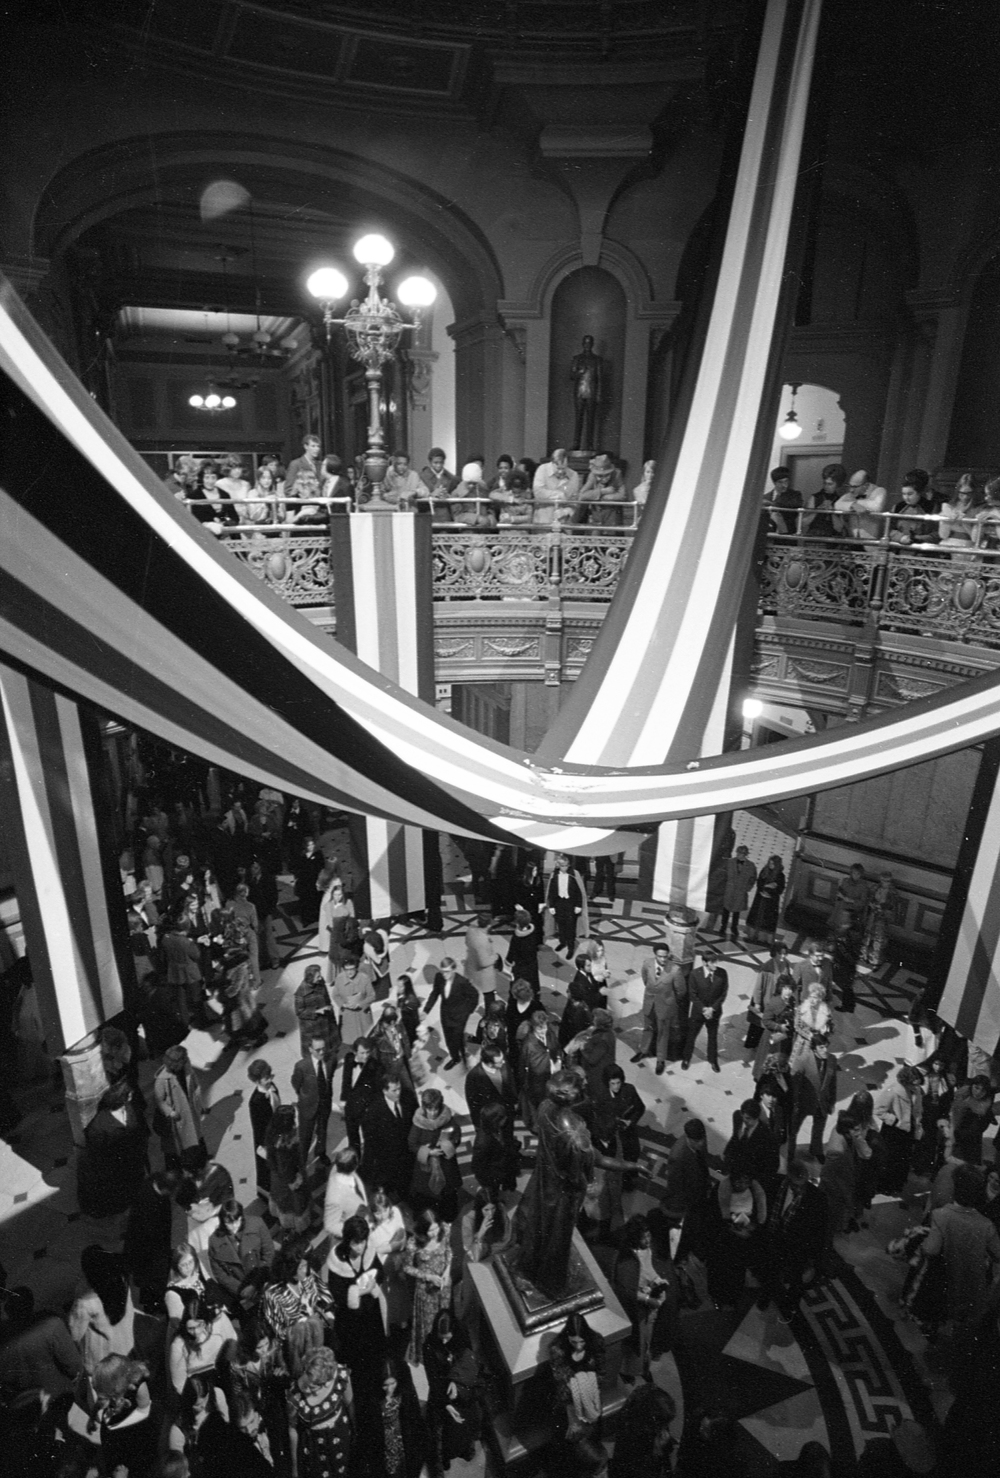 One of three inaugural balls for Gov. Dan Walker was held in the rotunda of the State Capitol. The others were in the Centennial Building's Hall of Flags and the Illinois State Armory. File/The State Journal-Register